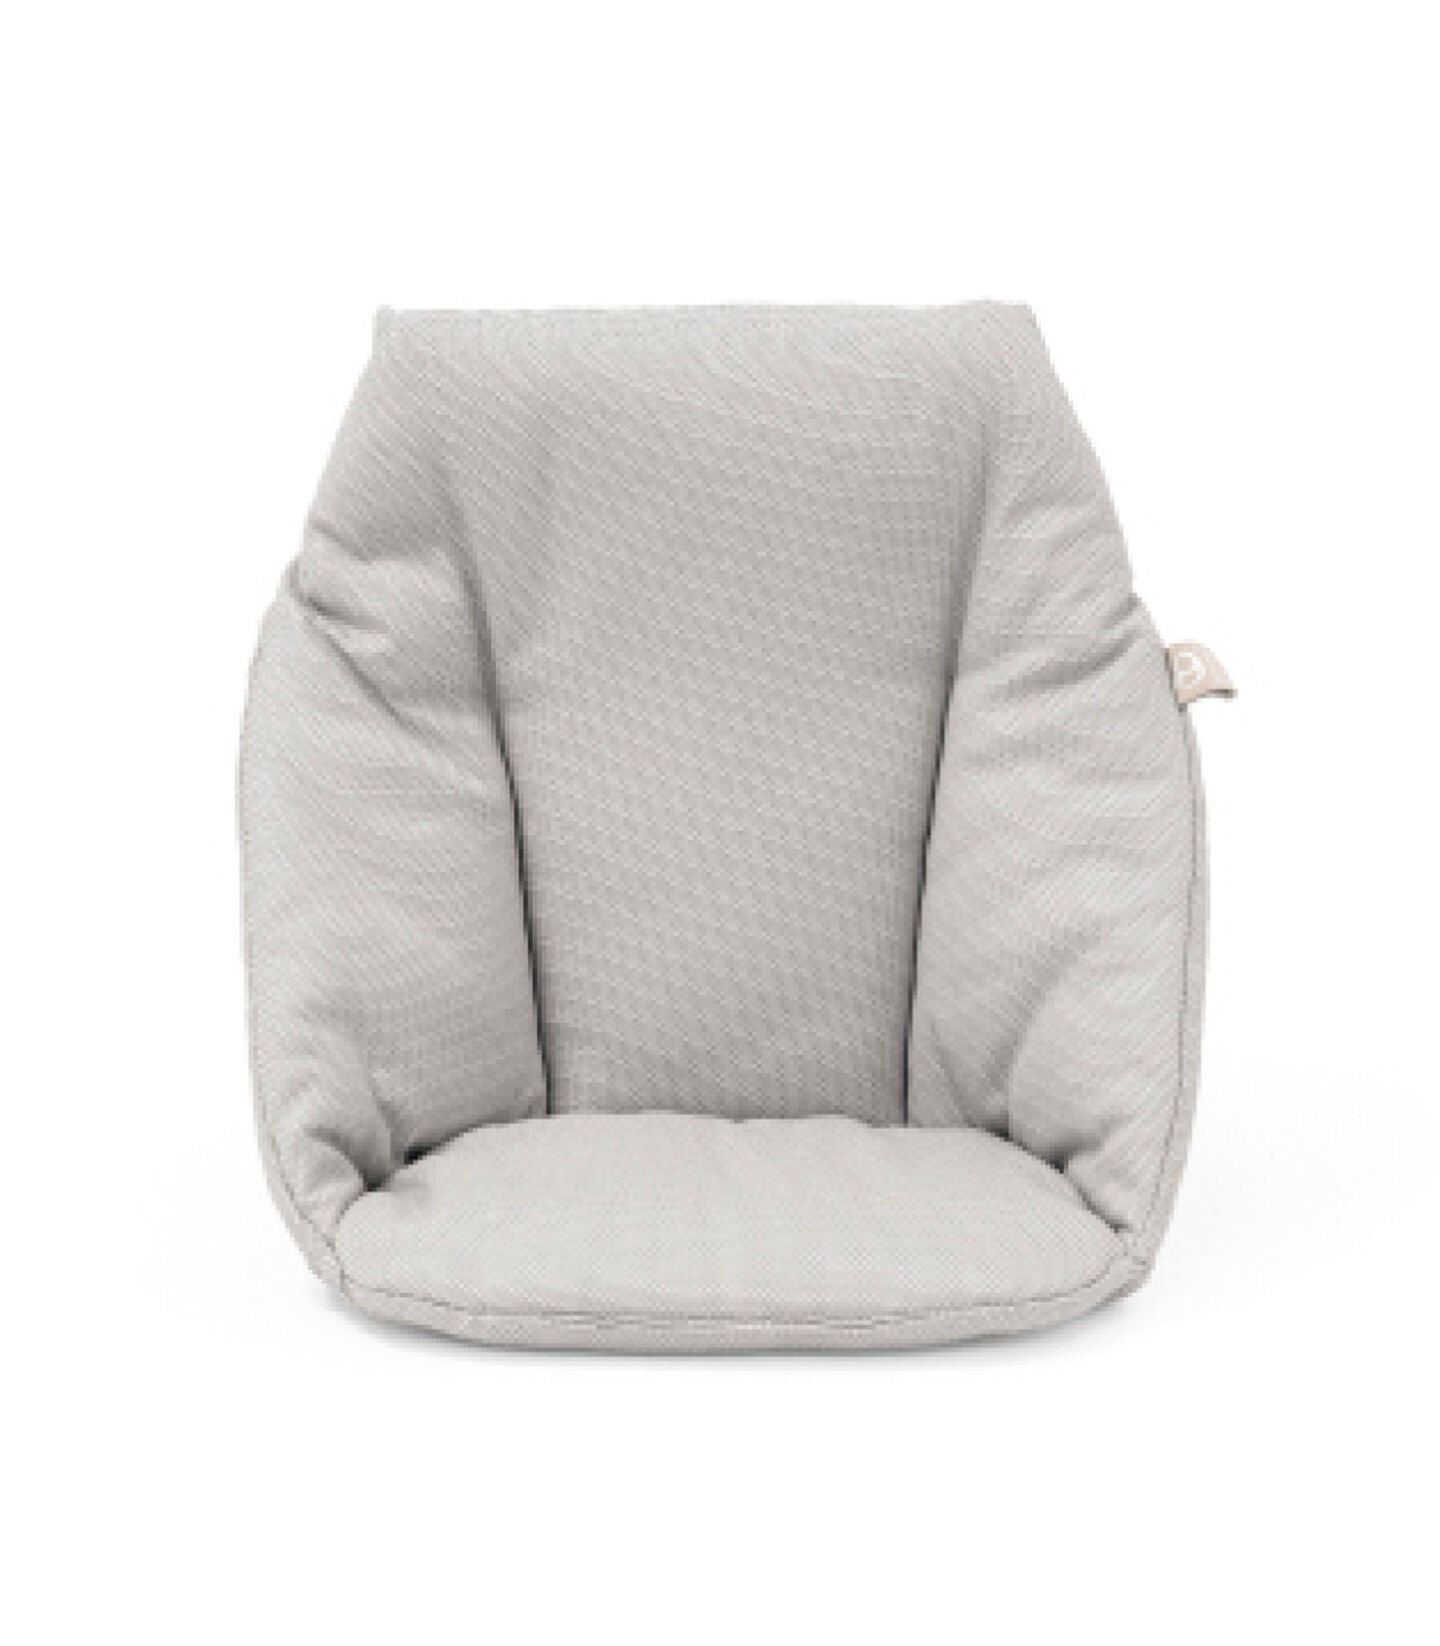 Tripp Trapp® Baby Cushion Timeless Grey OCS, Timeless Grey, mainview